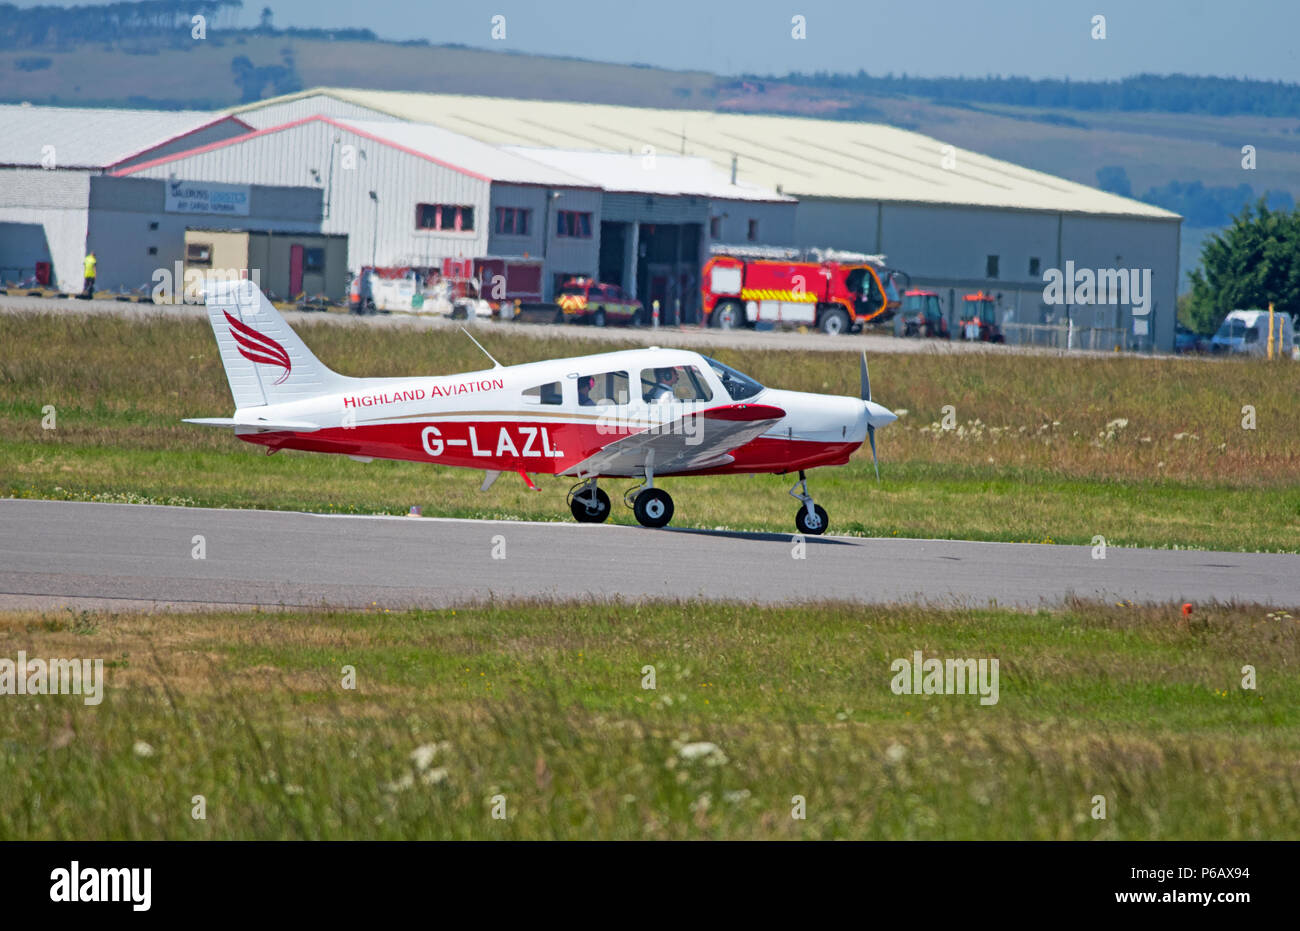 Piper PA -28-161 Cherokee Warrior ll at Inverness Dalcross airport during a flight training session. - Stock Image